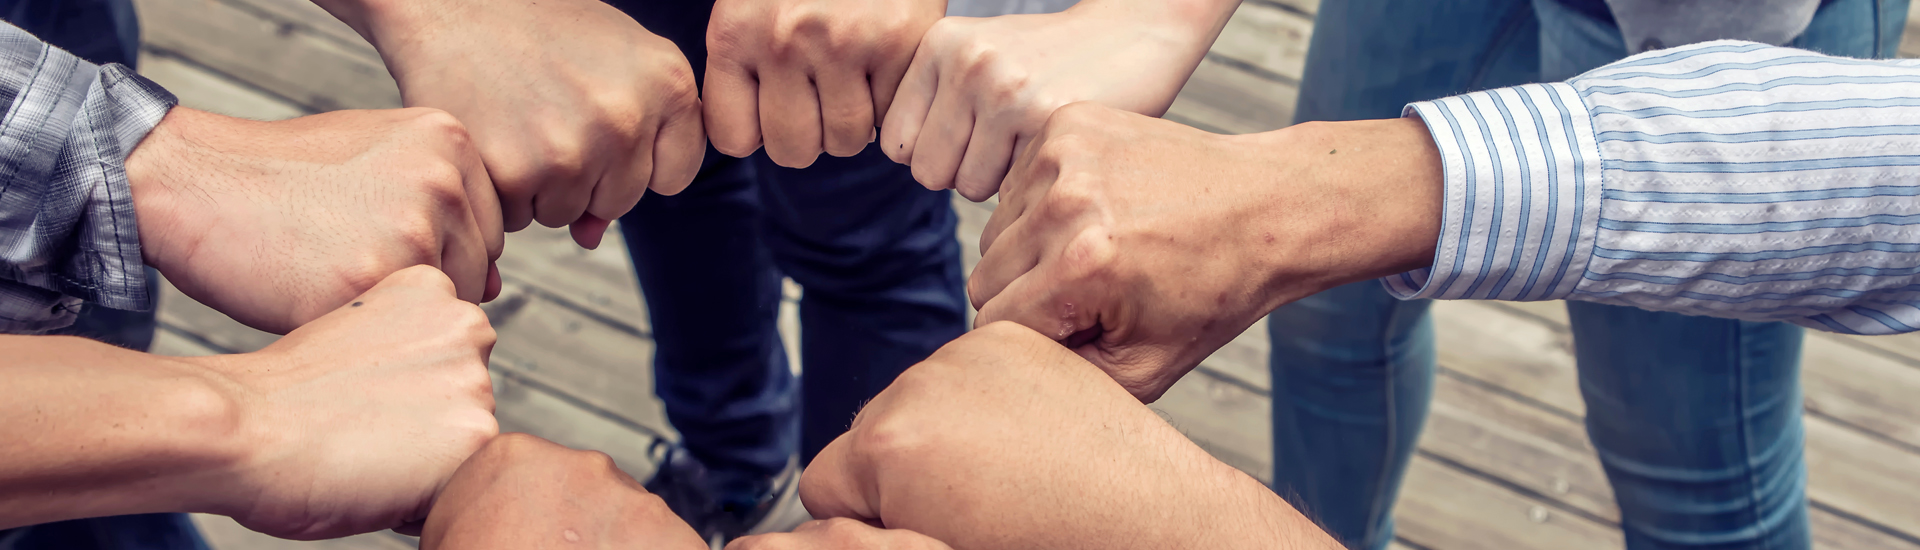 Group of Members Diverse Hands Together